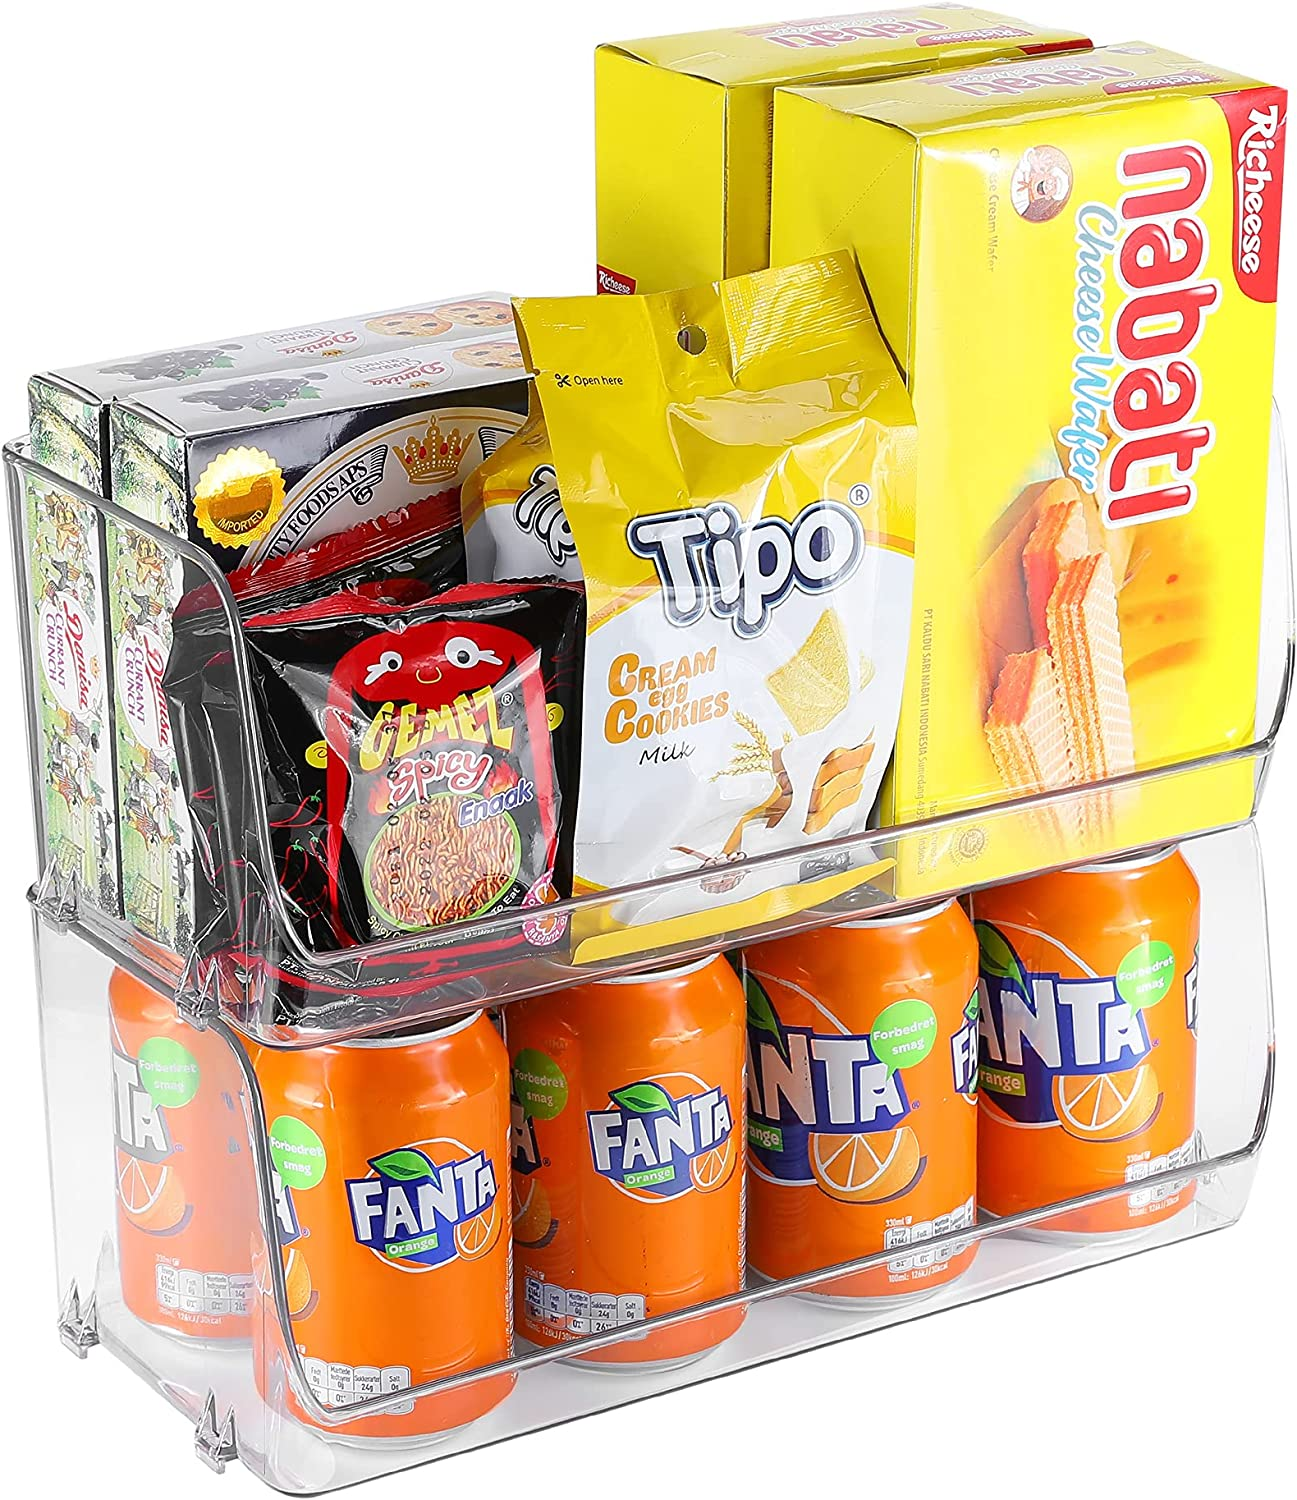 Puricon 2 Set Clear Stackable Plastic Organizer, Open Front Food Storage Bins for Snacks, Drinks, Soups, Spices, Cans, Seasoning Packets Pouches, for Kitchen Pantry Canbinet Countertop Fridge Freezer